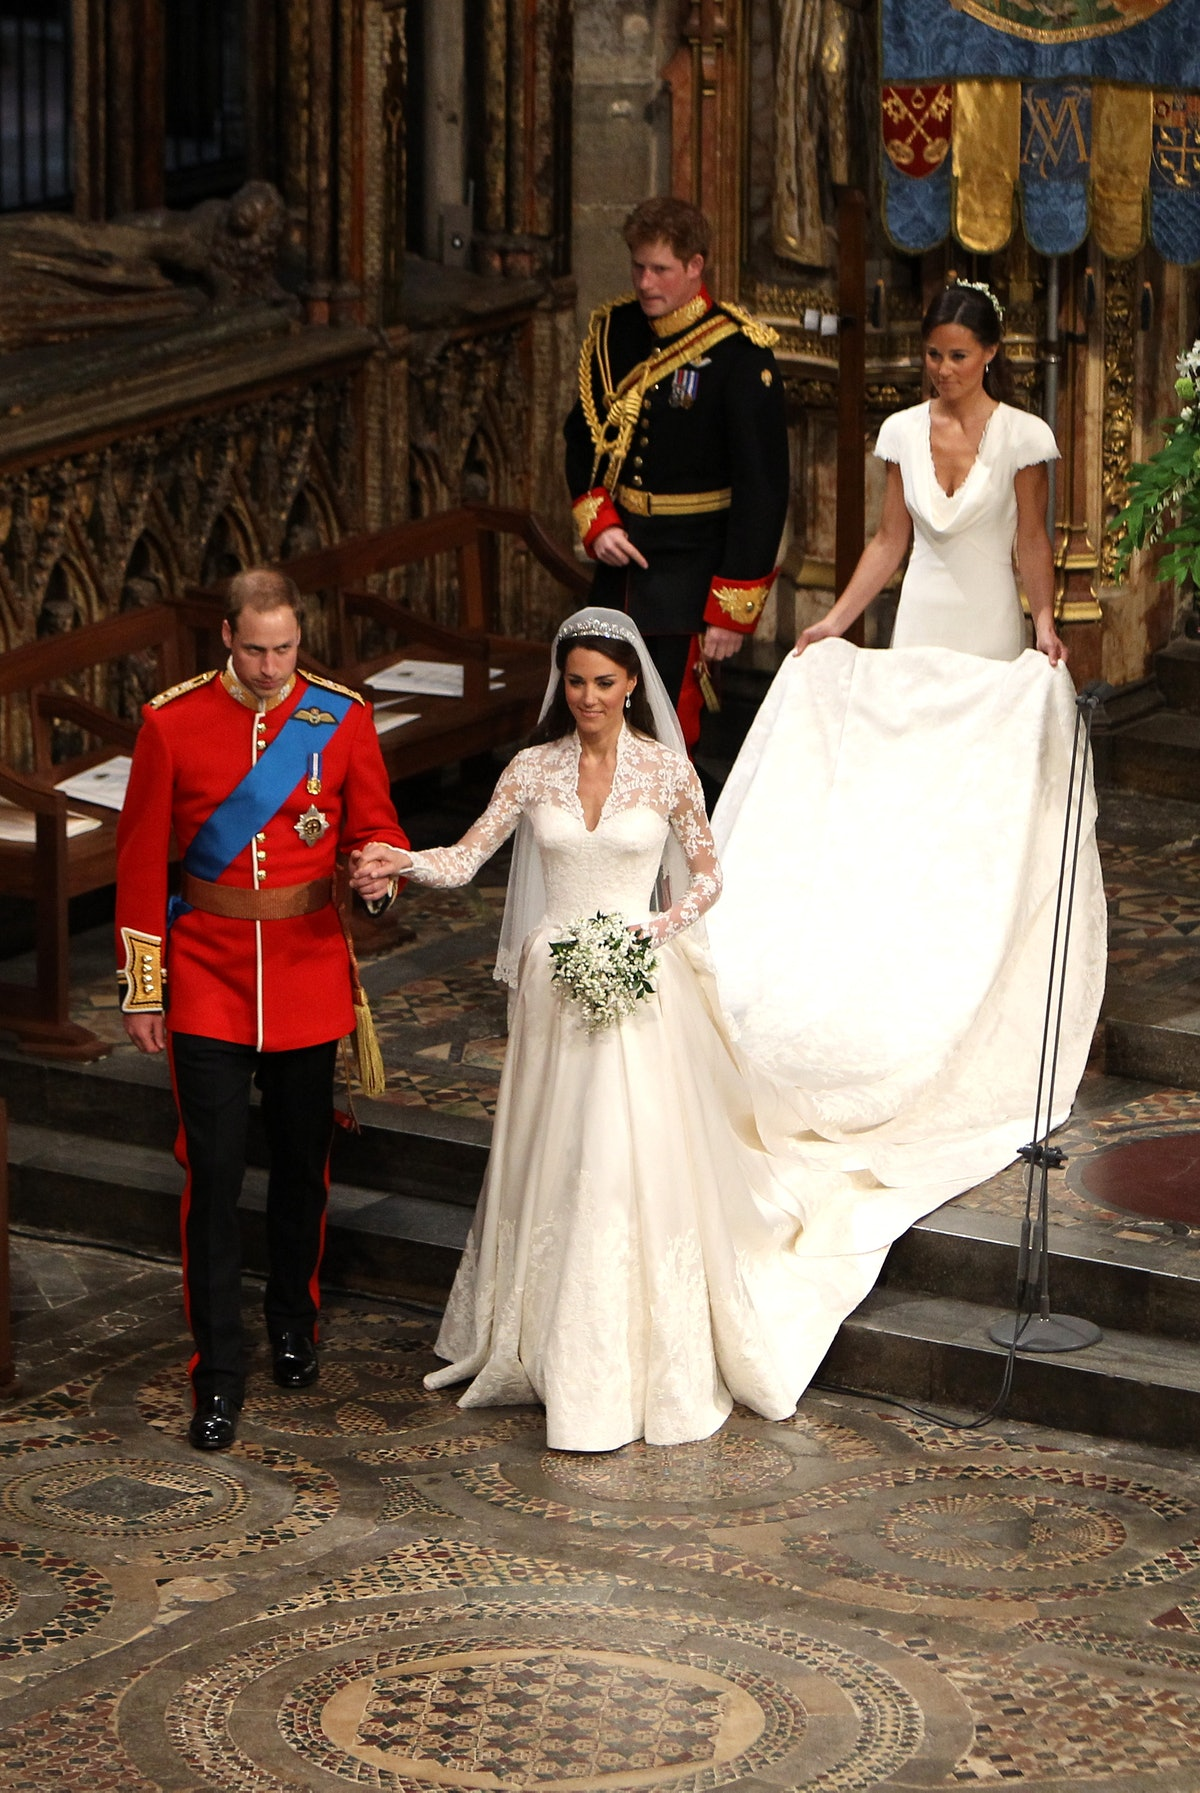 TRH Prince William, Duke of Cambridge and his new bride Catherine, Duchess of Cambridge walk down the aisle followed by best man Prince Harry and Maid of Honour Pippa Middleton